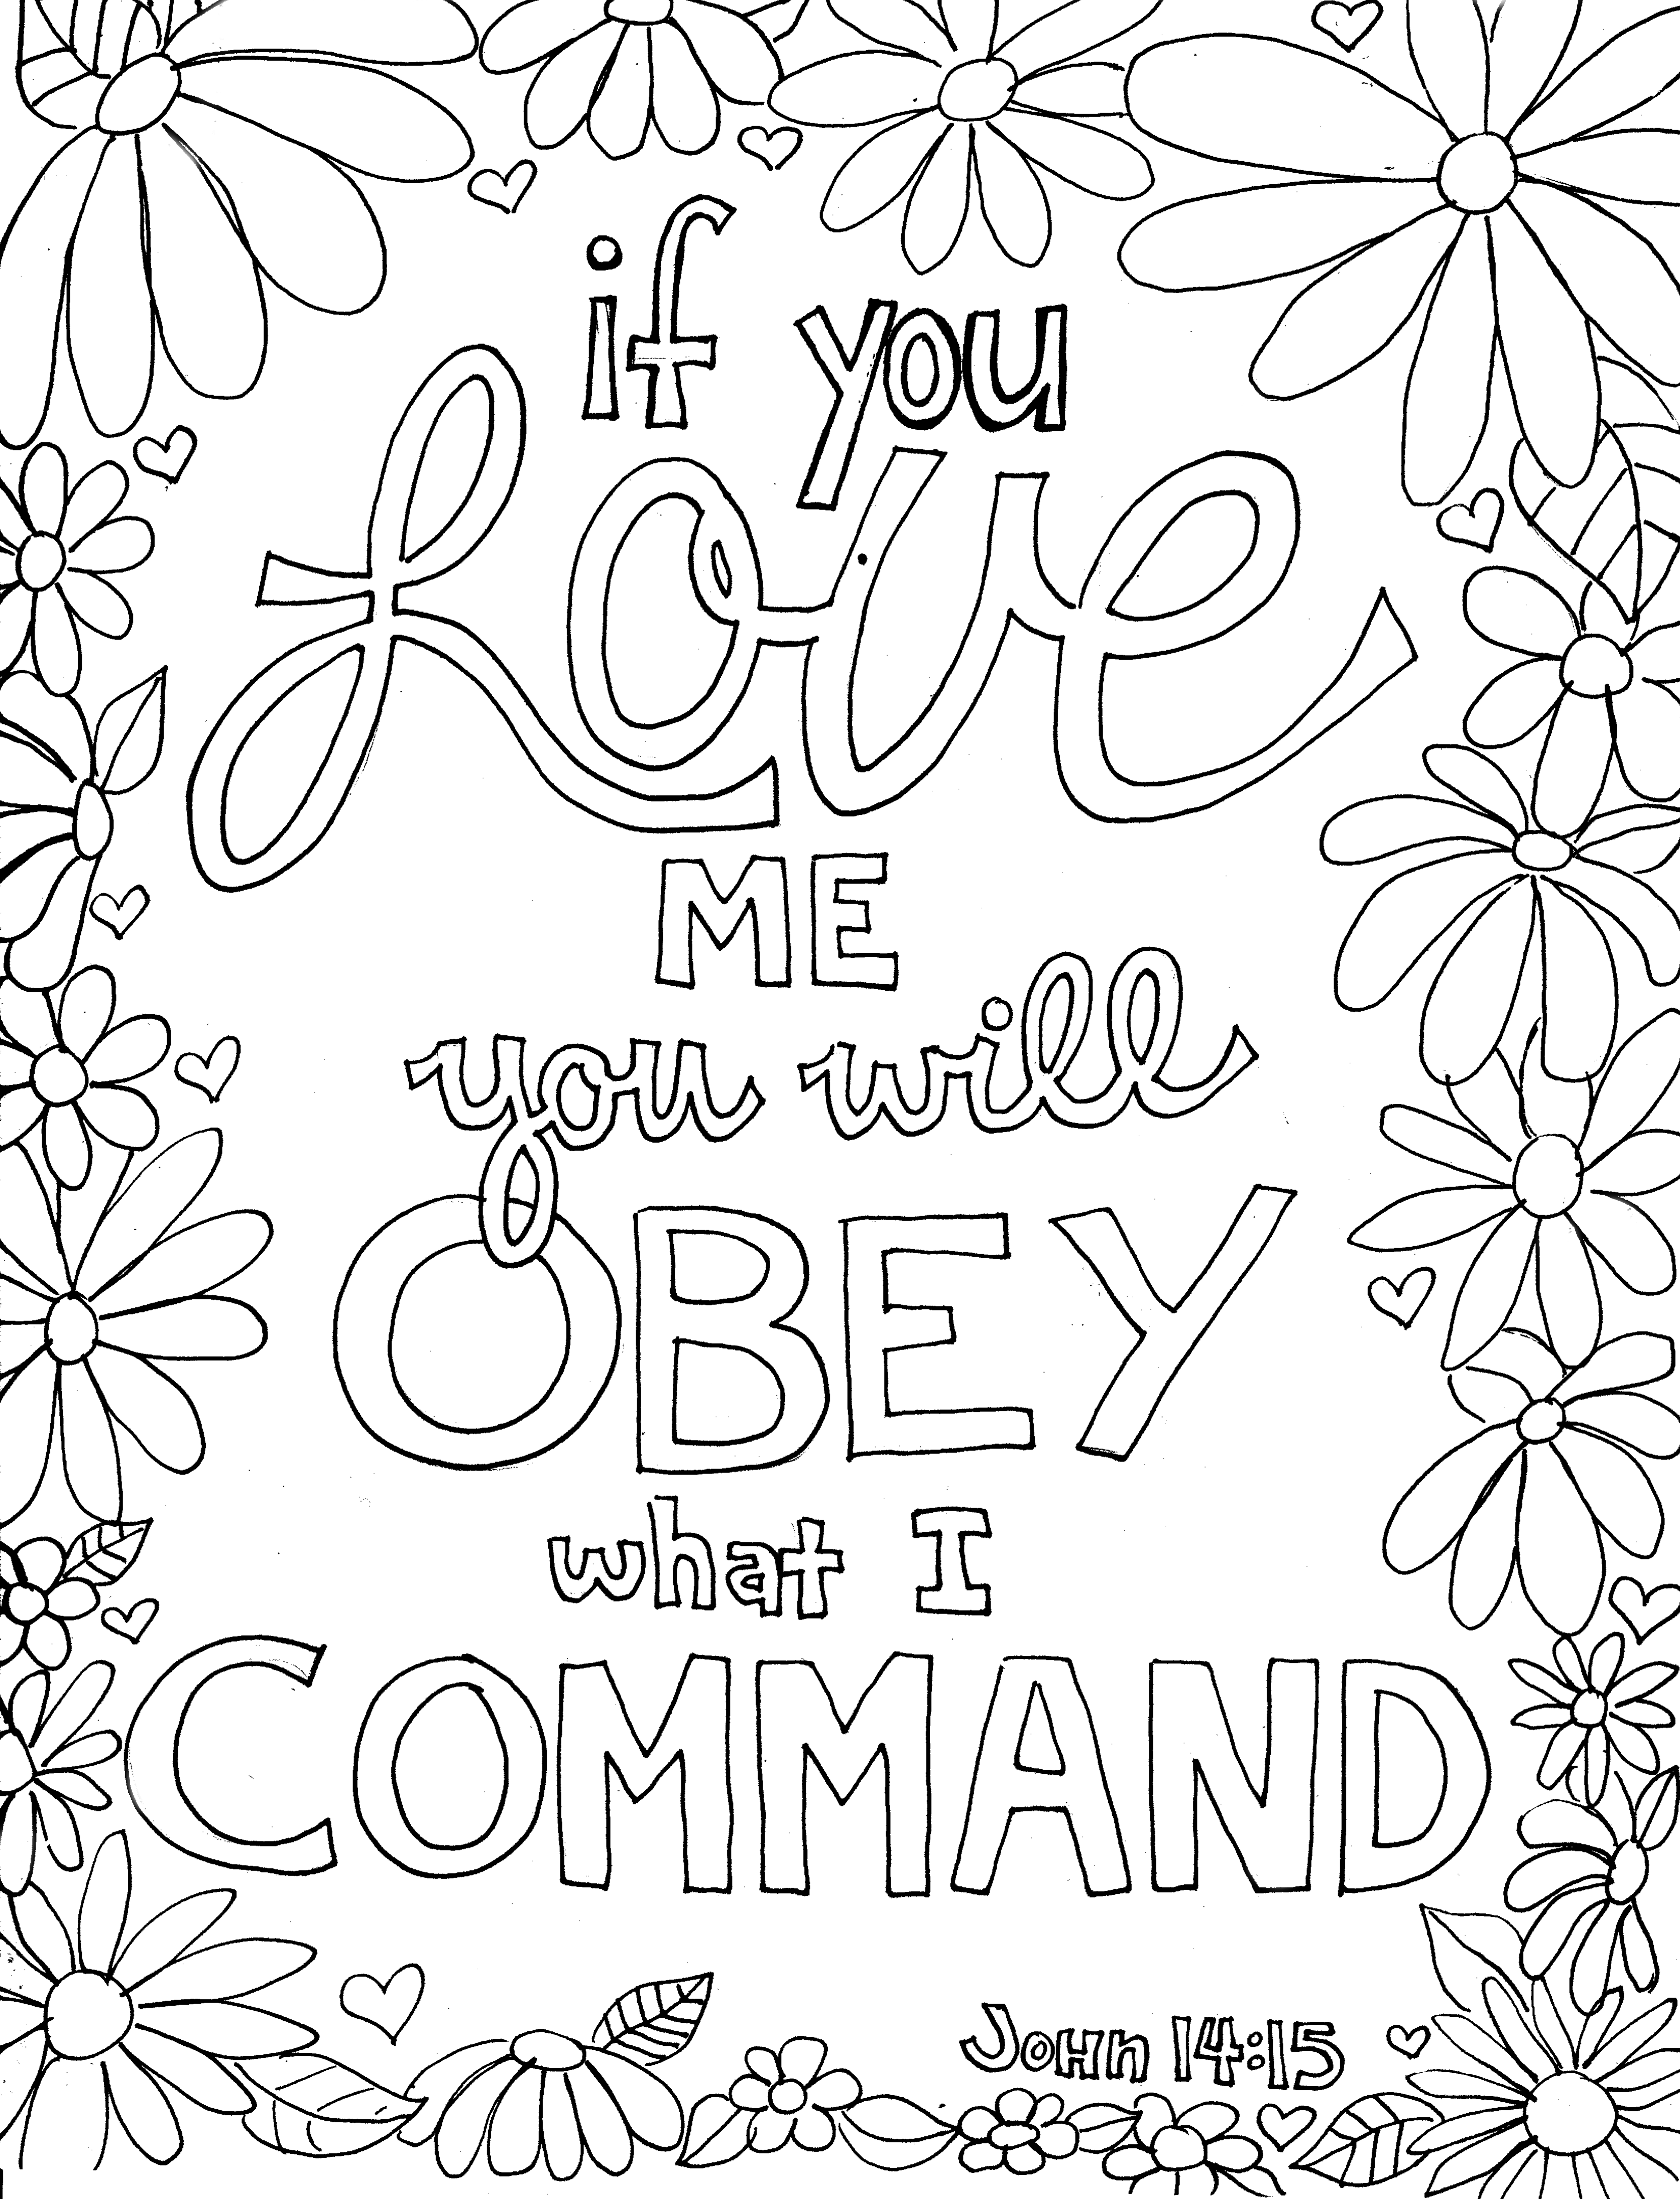 Adult Top Obedience Coloring Page Gallery Images top obey from victory road john 14 15 gallery images